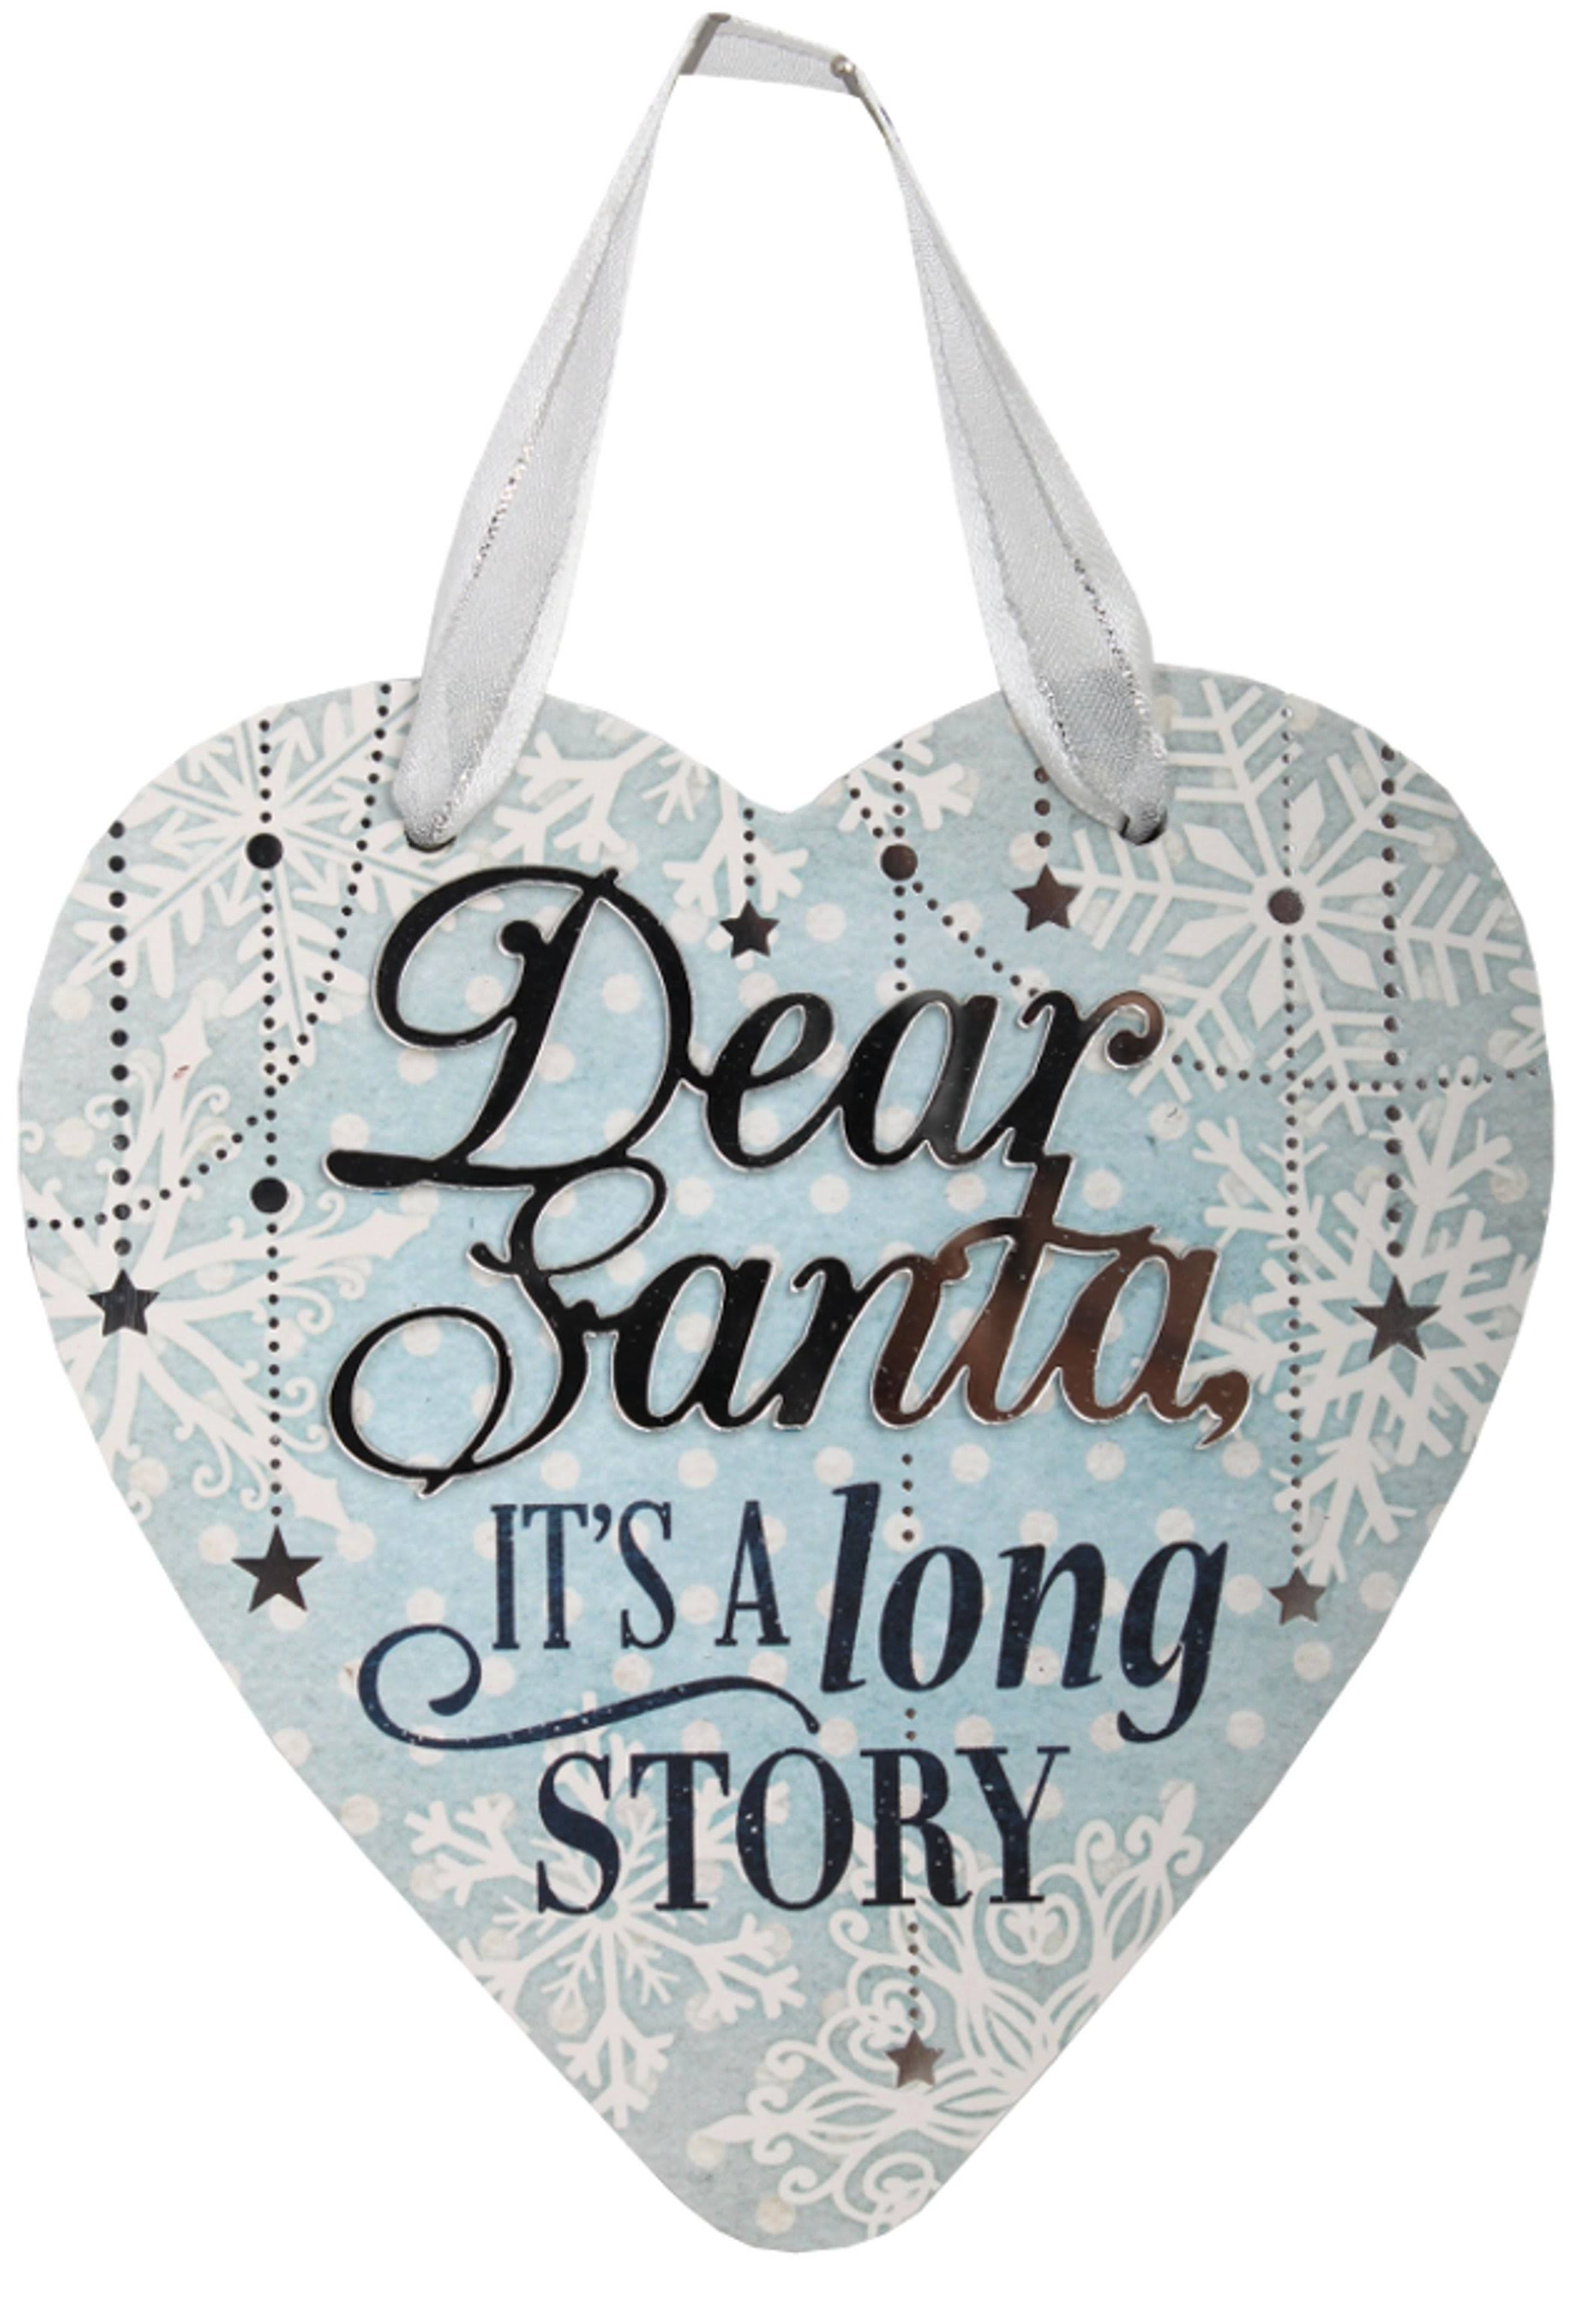 H&H 'Dear Santa'Festive Words Hanging Plaque - Gift Horse Online